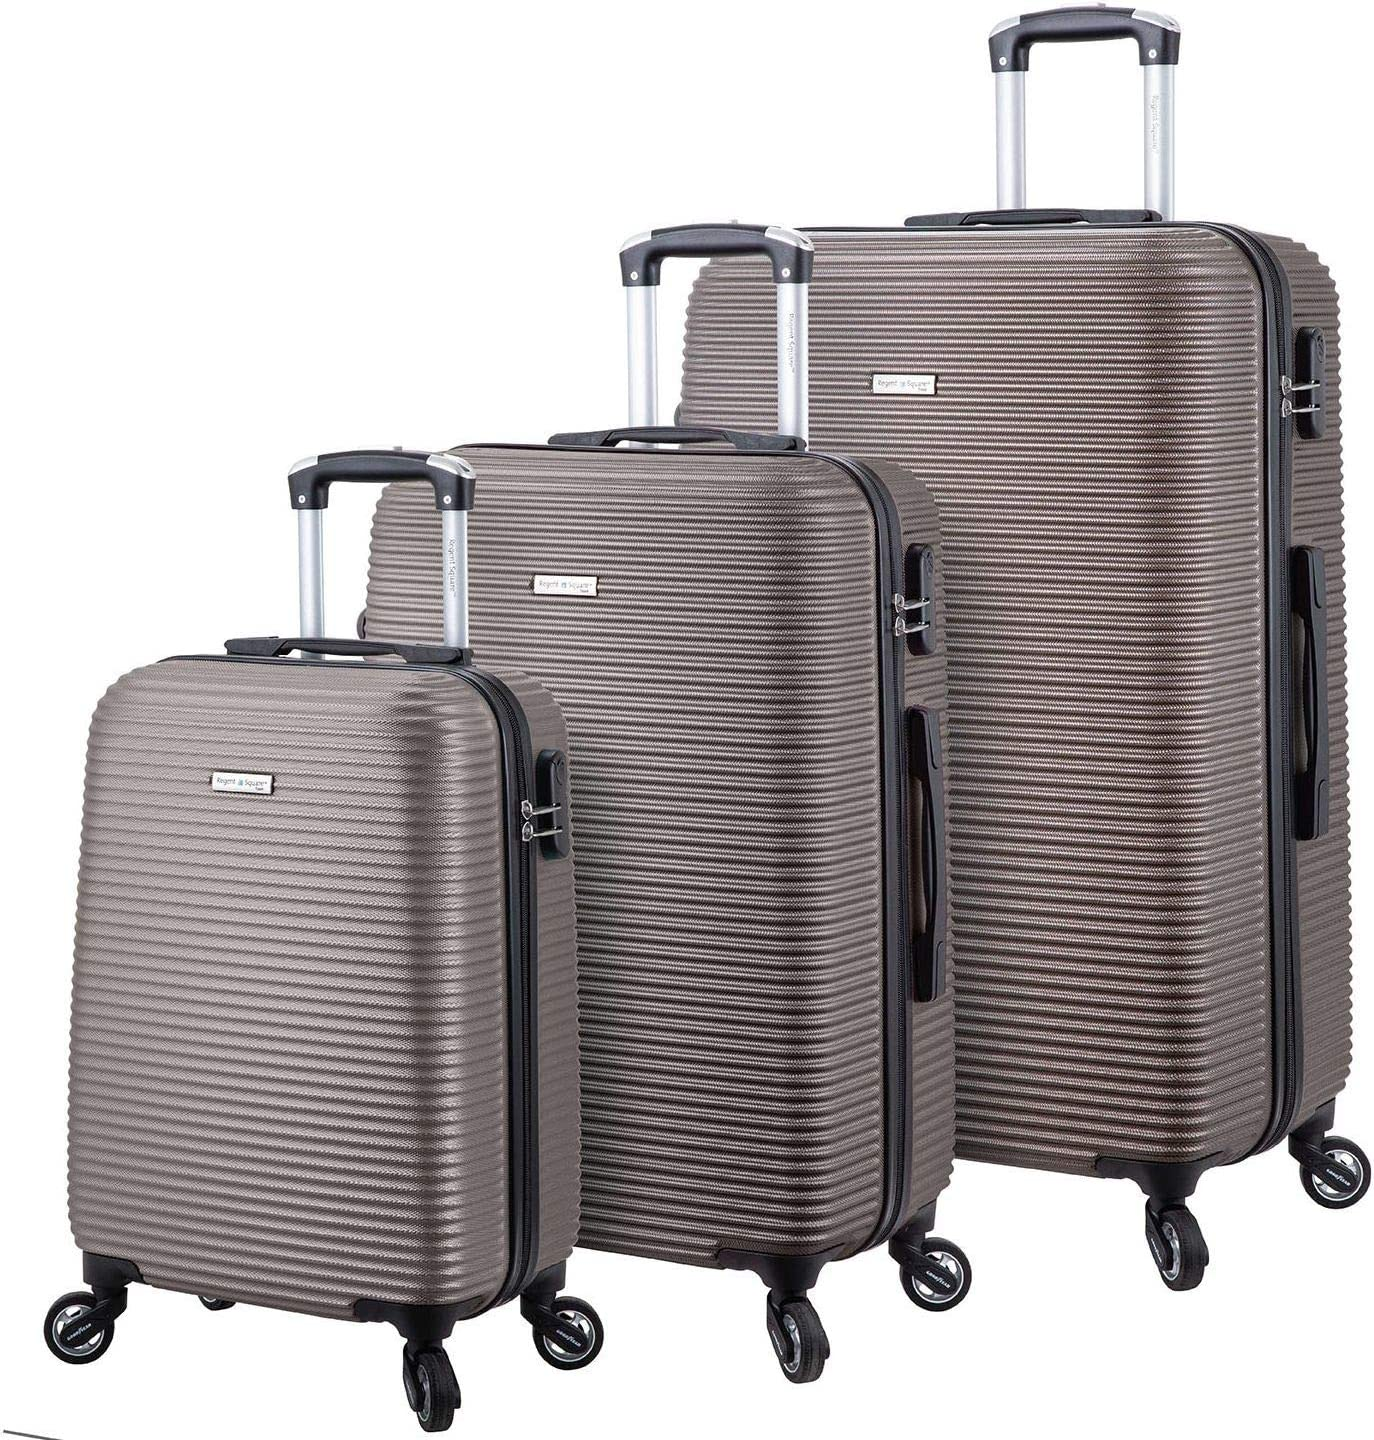 Regent Square Travel – Luggage Set Anti-Scratch Texture Hard Shell With Spinner Silent Goodyear Wheels And Integrated Lock – Set of 3 Pieces – Hard Case – Cool Grey